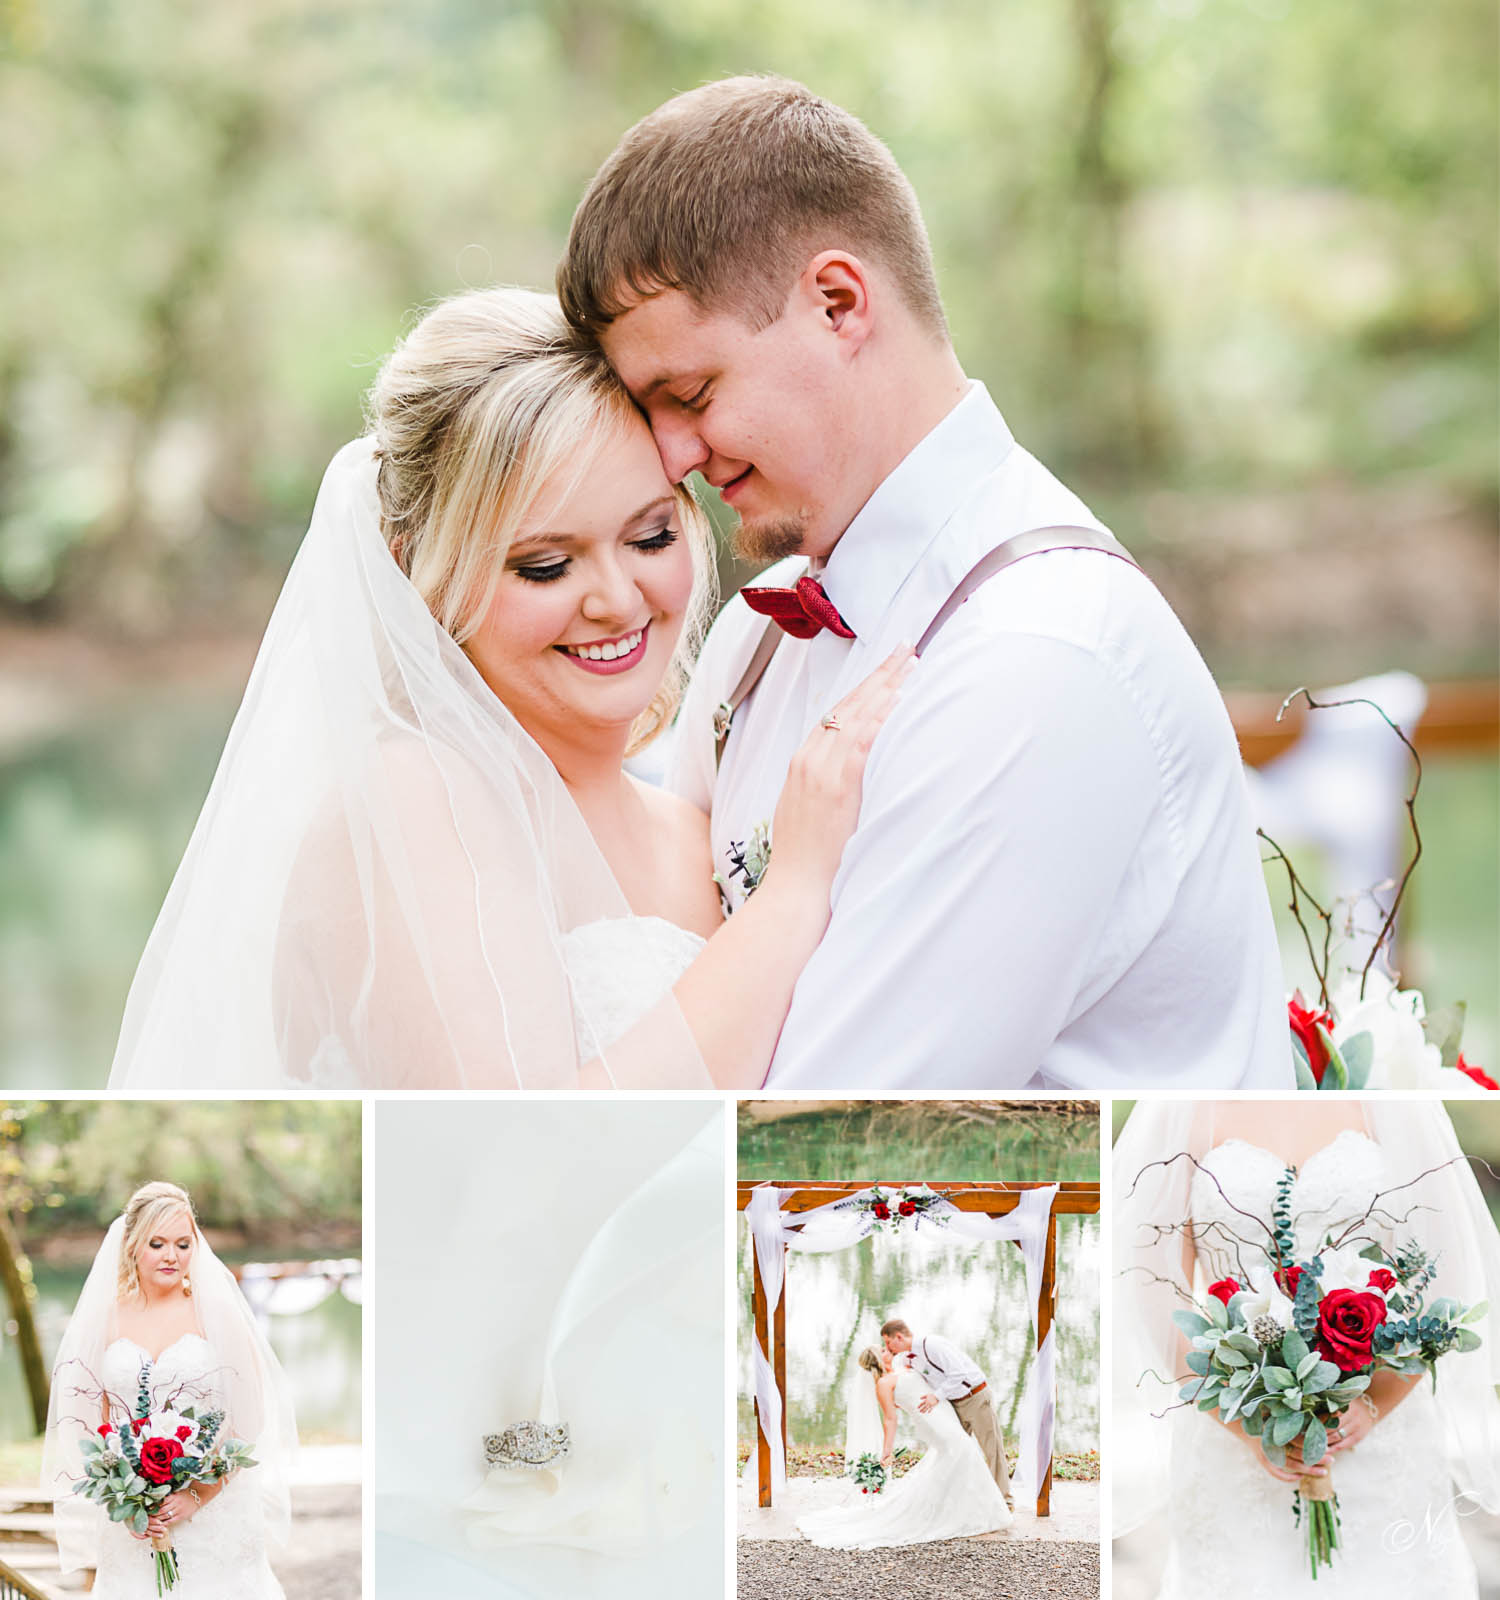 NELYA_TENNESSEE wedding photographer_PINNIT